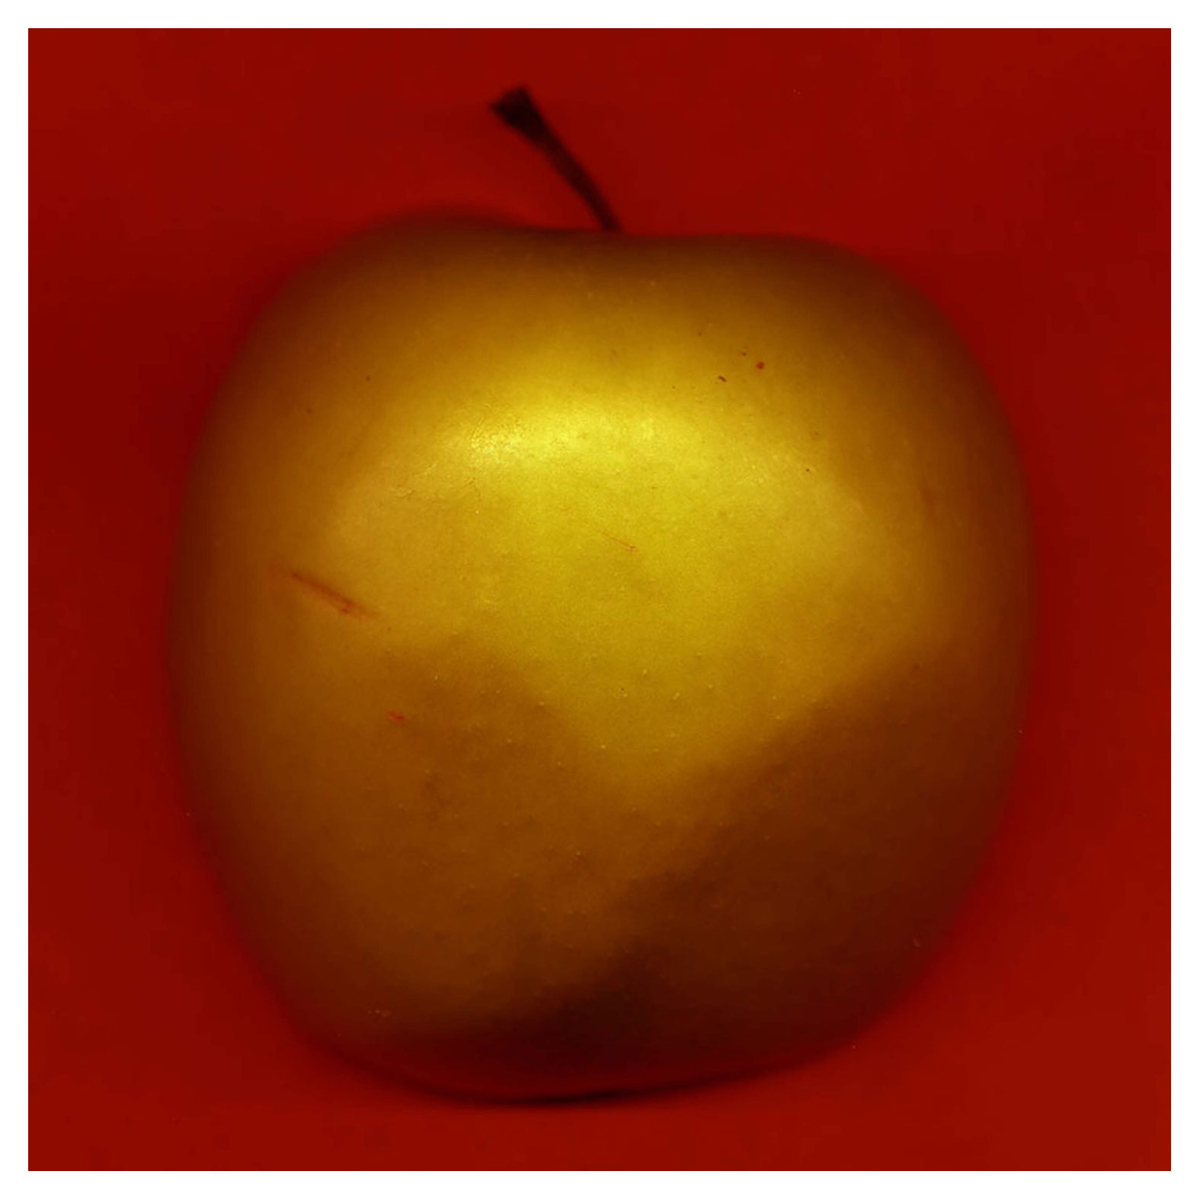 Golden Apple (large view)